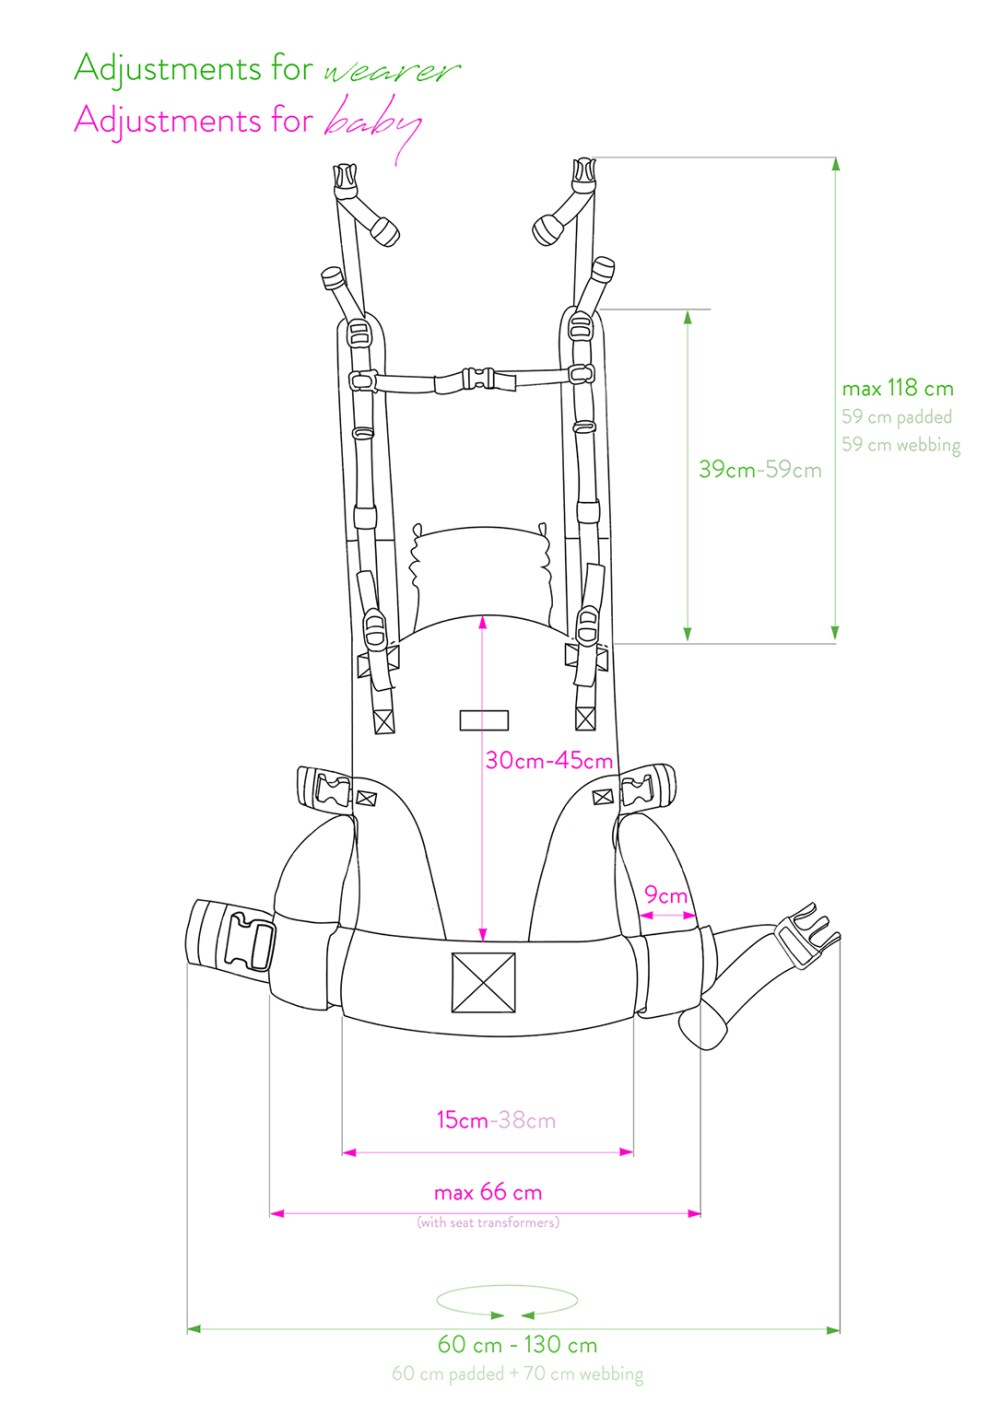 medium resolution of for newborns starting with 3 kg 6 6 lbs the seat transformers can be easily detached to provide the ultimate adjustability ranging between 15 cm 6